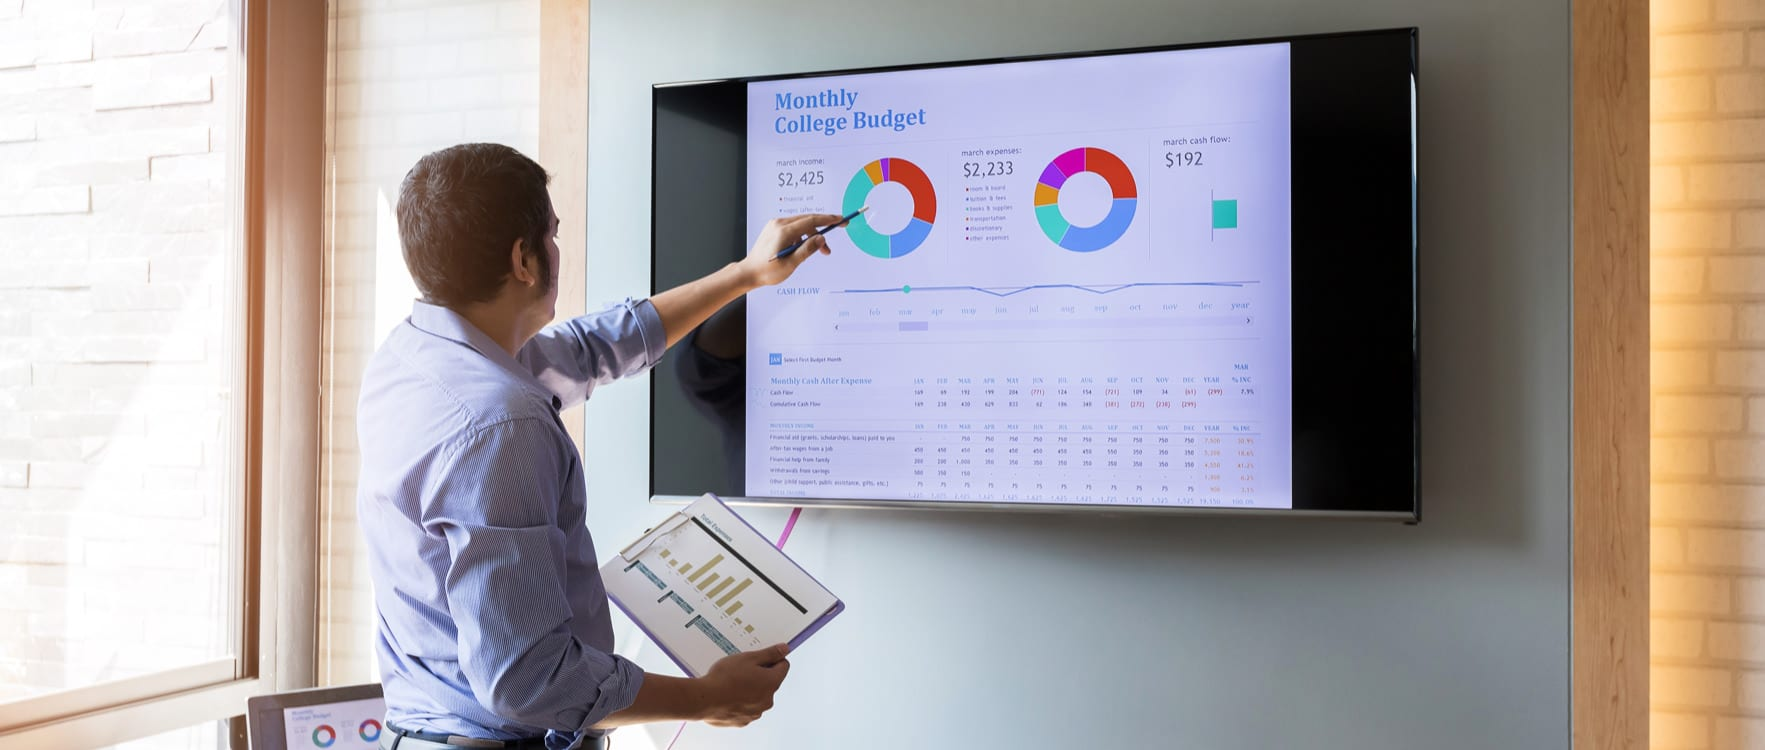 Businessman pointing at a monthly budget chart in a screen